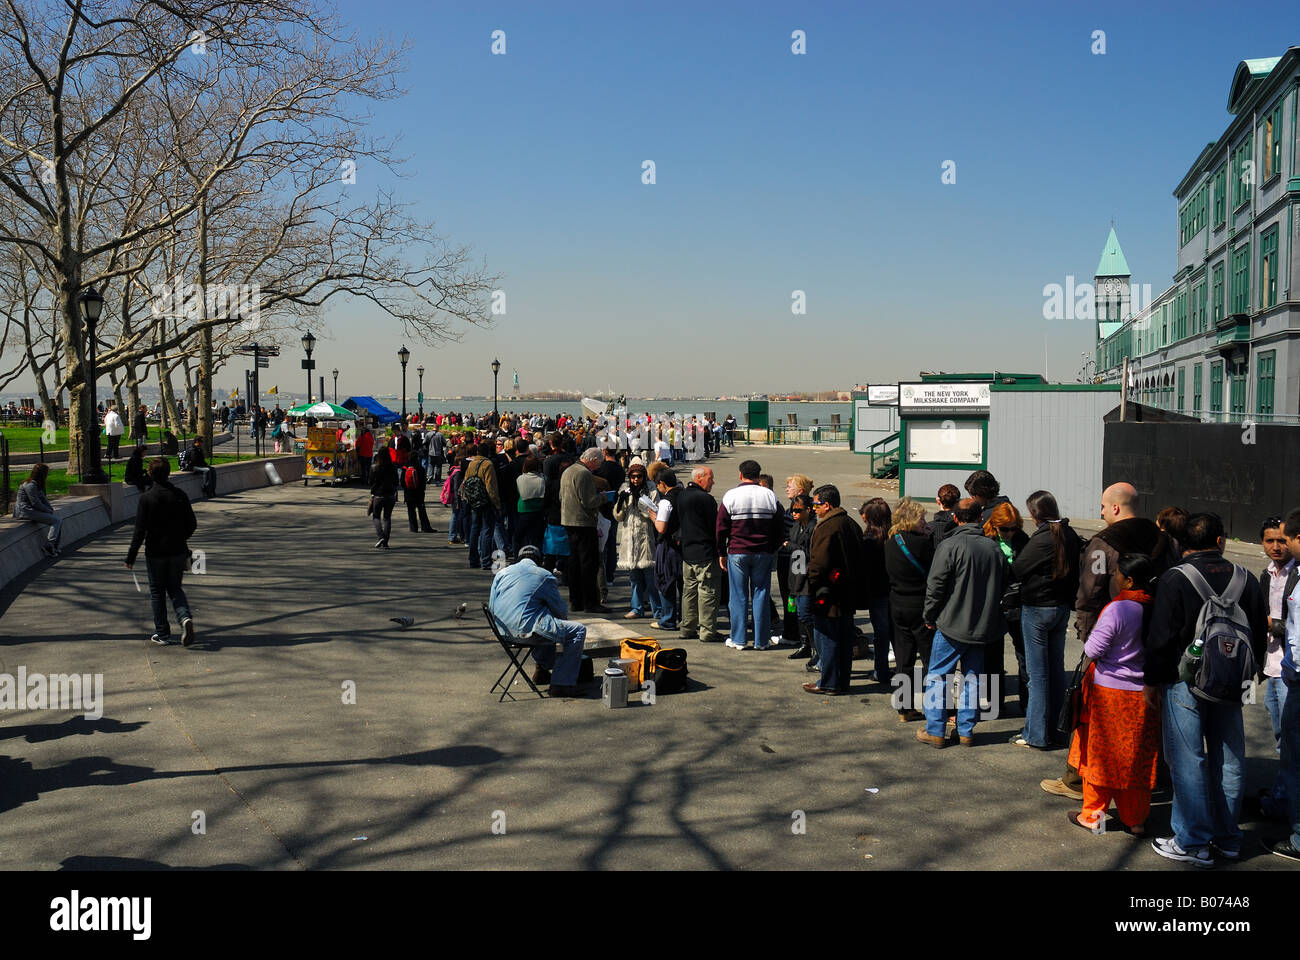 Tourists waiting in the line for the Liberty Island visit to see the Statue of Liberty, New York Stock Photo